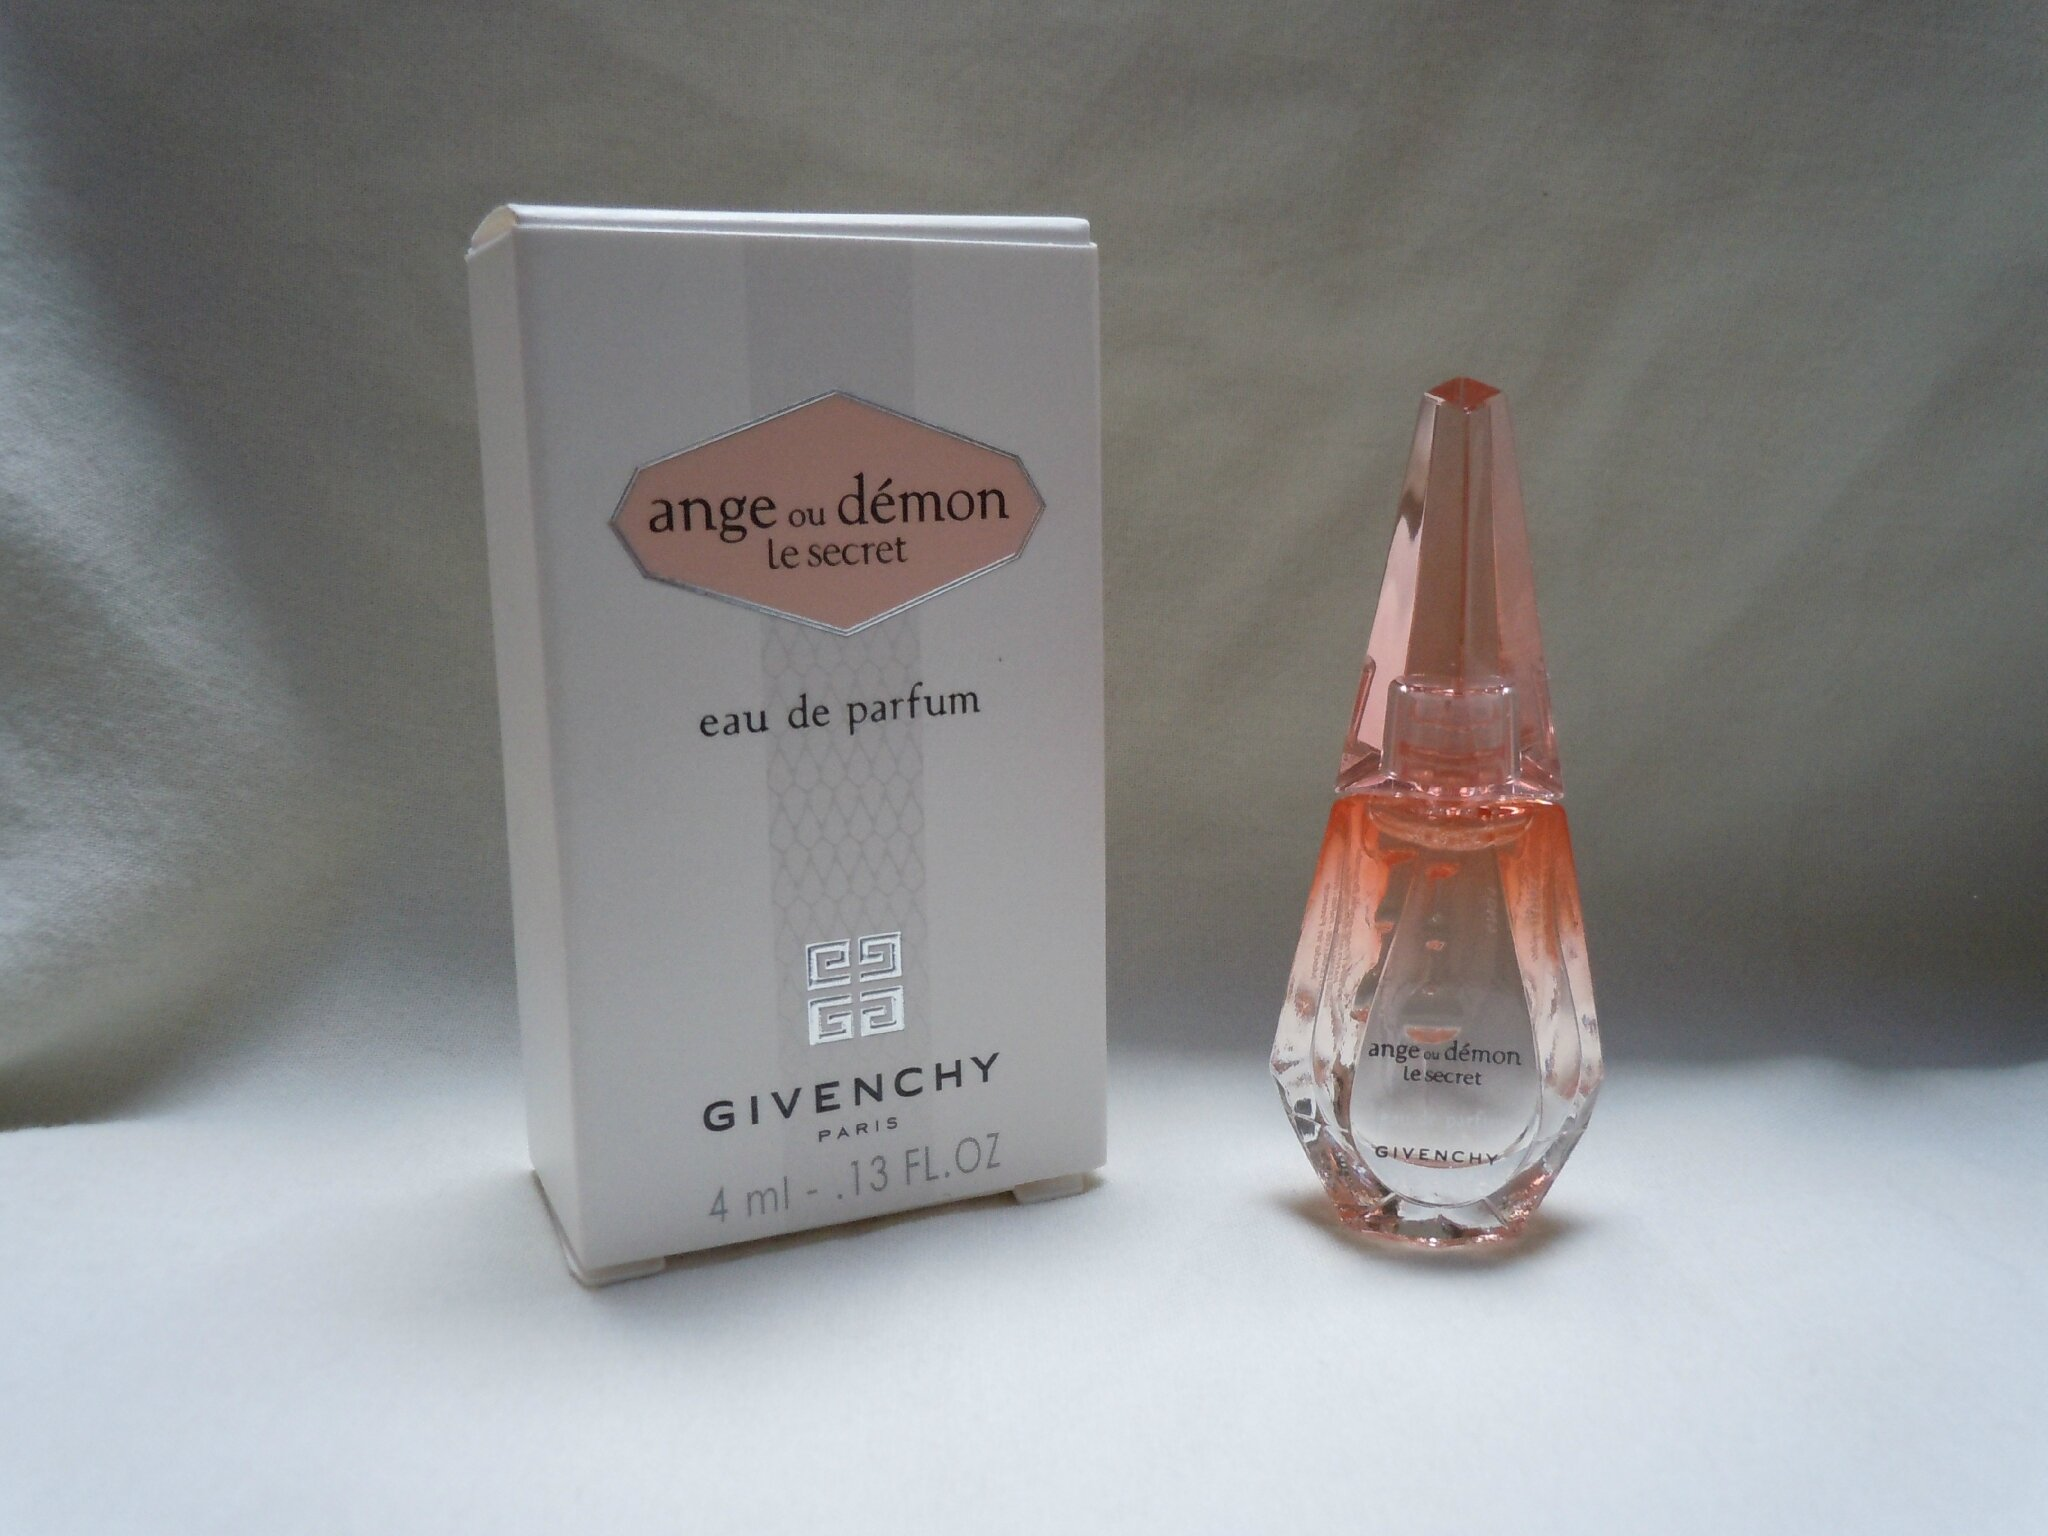 GIVENCHY-ANGEOUDEMONLESECRET-VERSIONSANSTRAITS